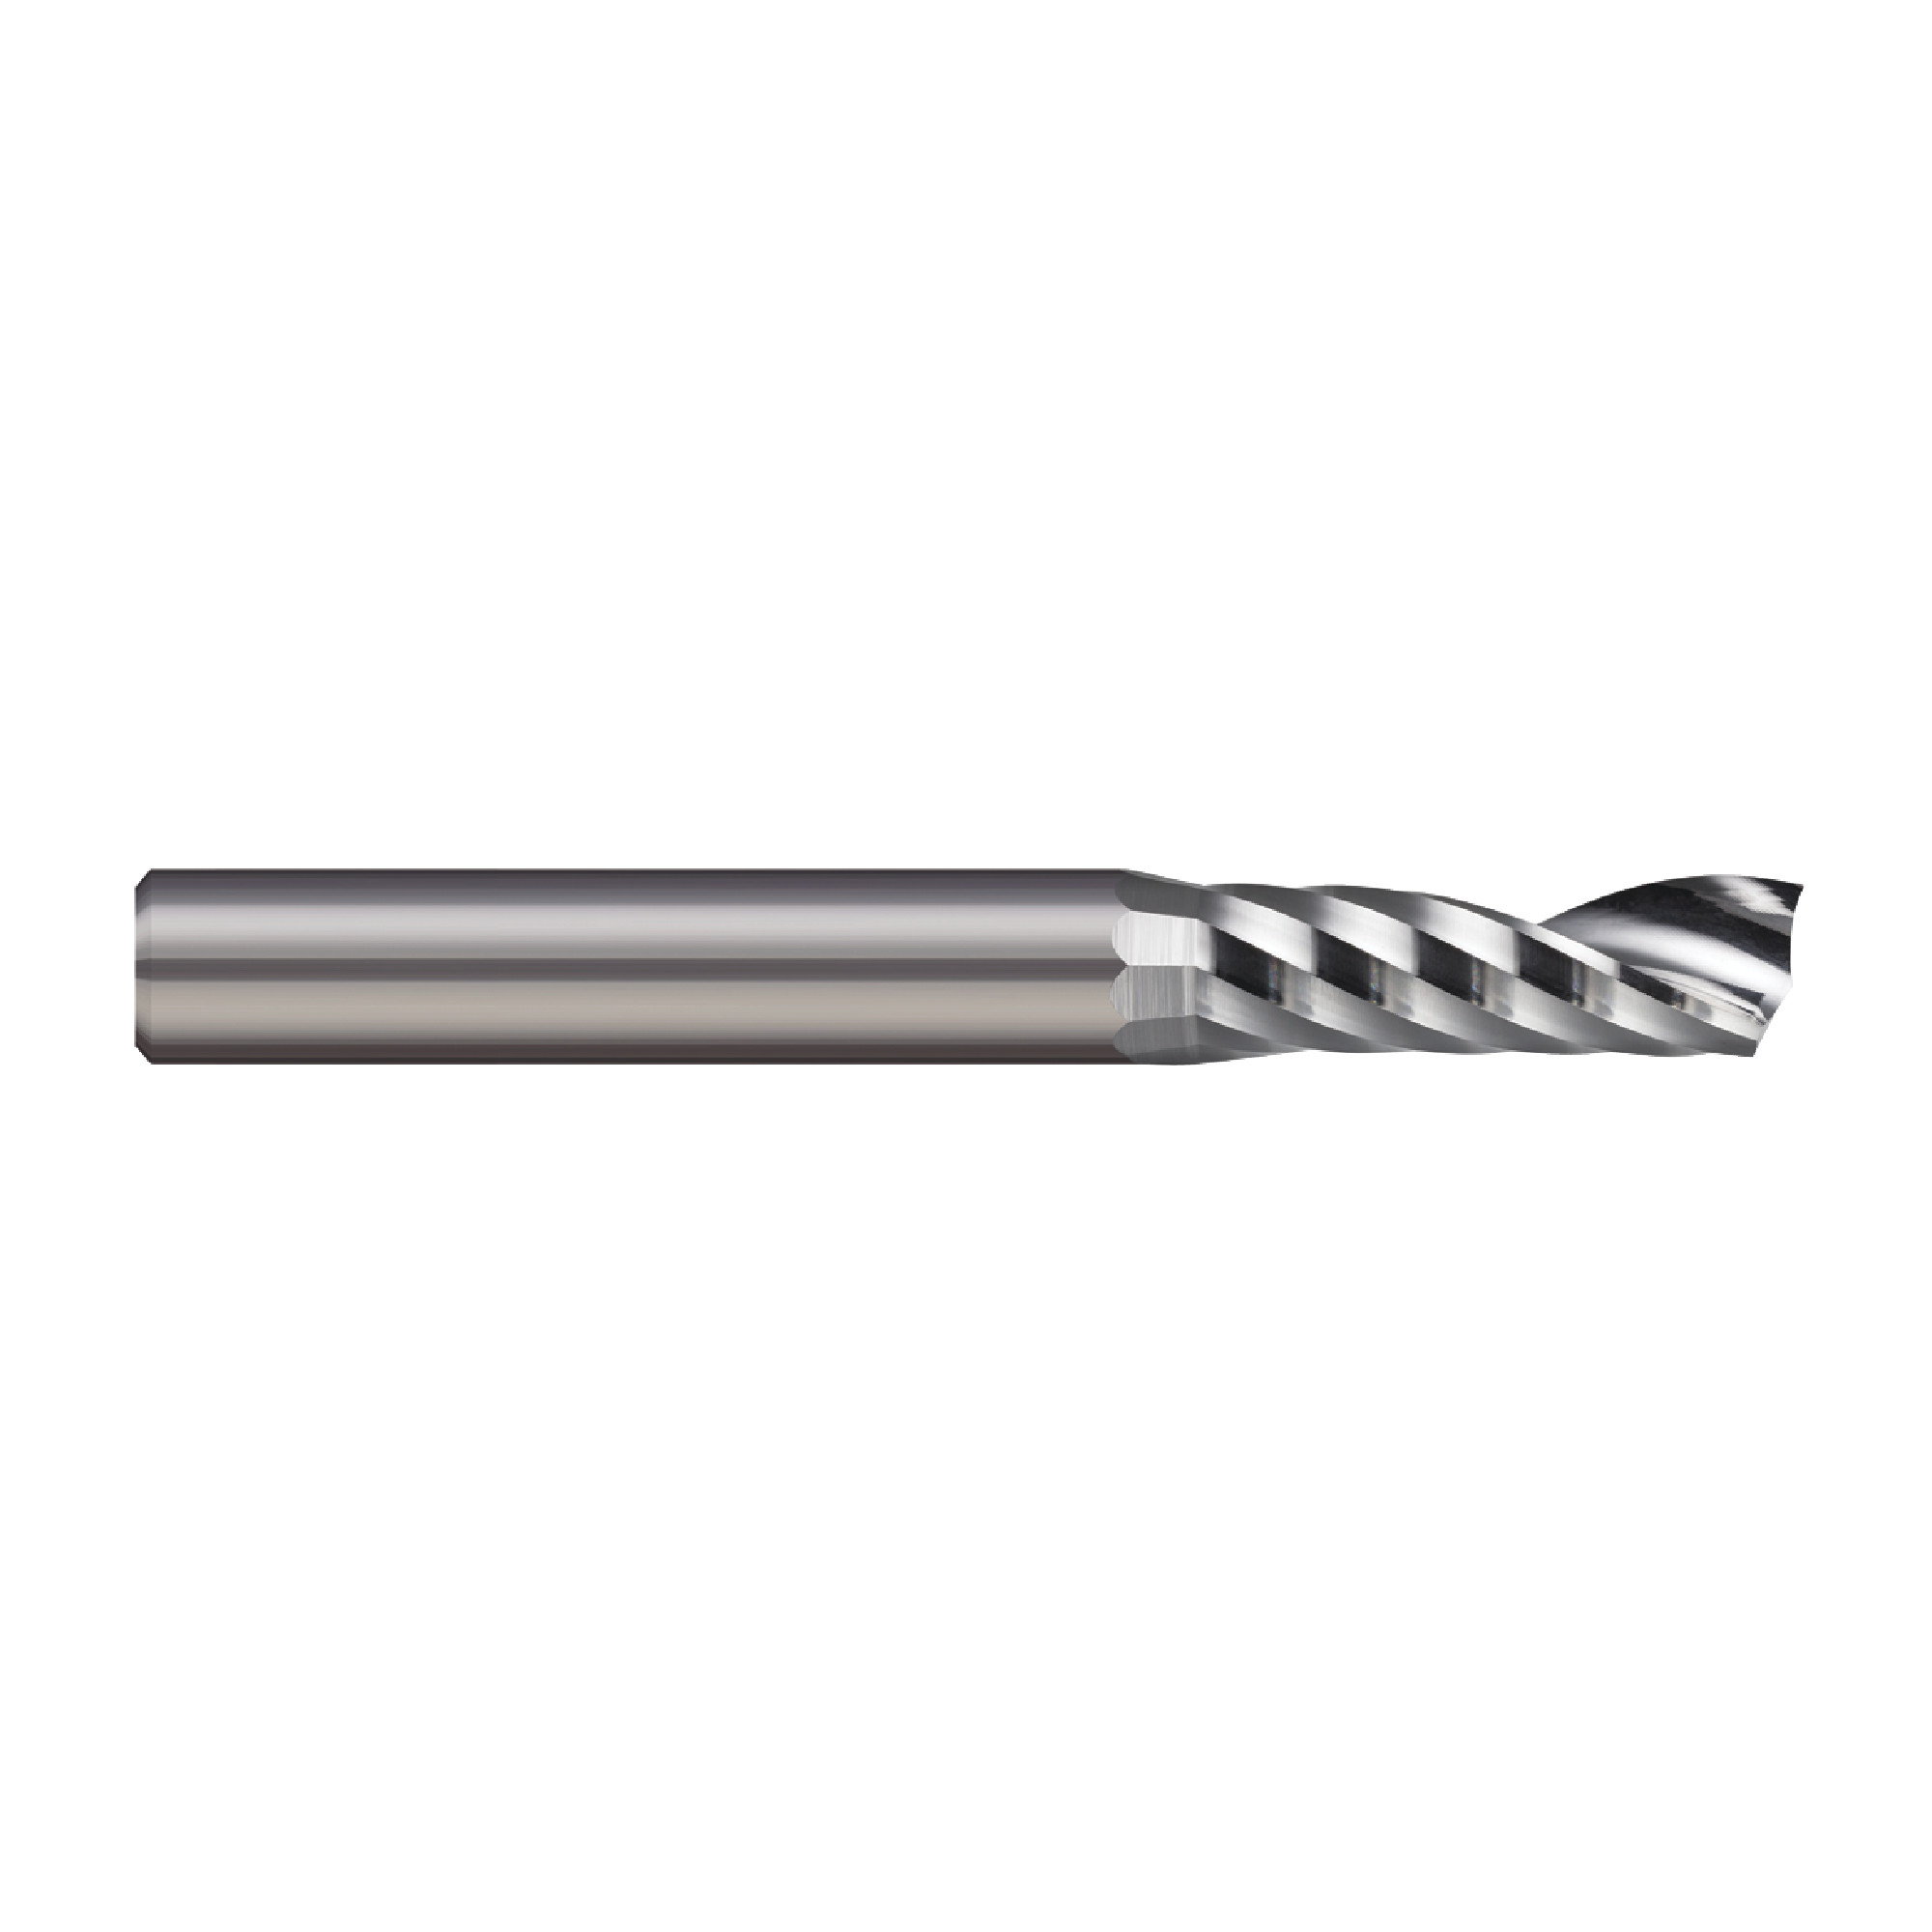 Single Flute Solid Carbide Router